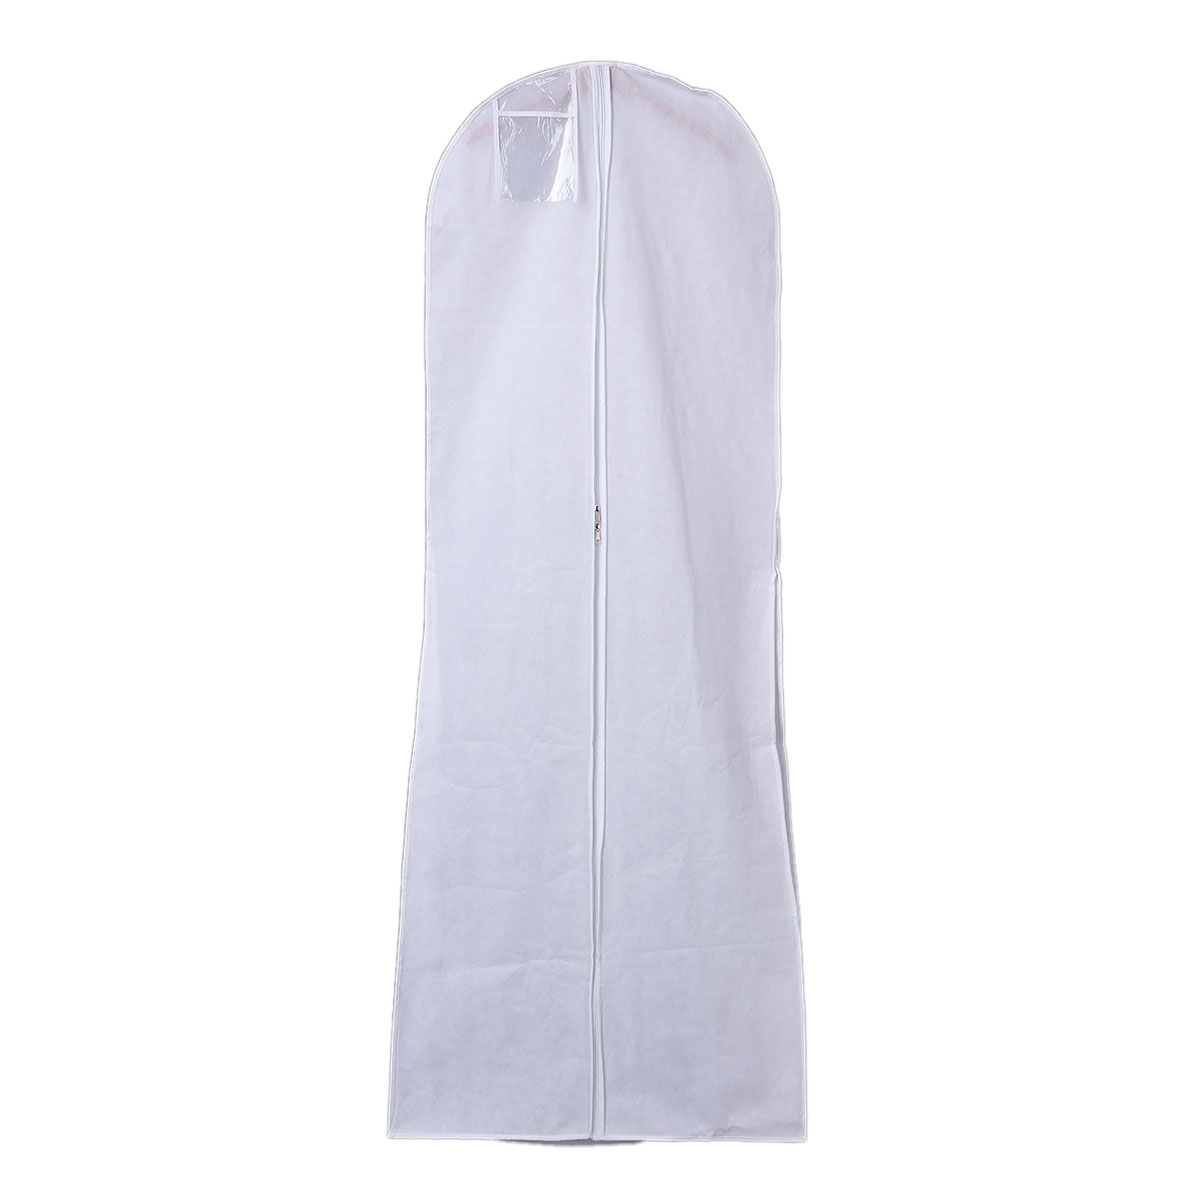 GSFY-Hanging Wedding Dress Bridal Gown Garment Cover Storage Bag Carry Zip Dustproof White(China (Mainland))